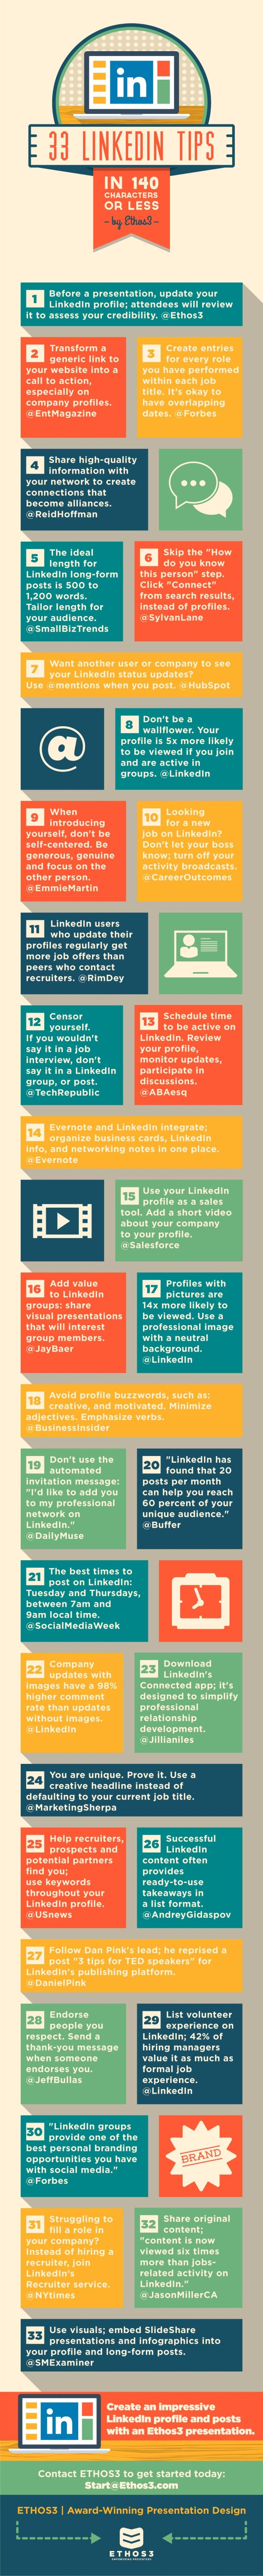 33 LinkedIn Tips In 140 Characters Or Less – #infographic #socialmedia